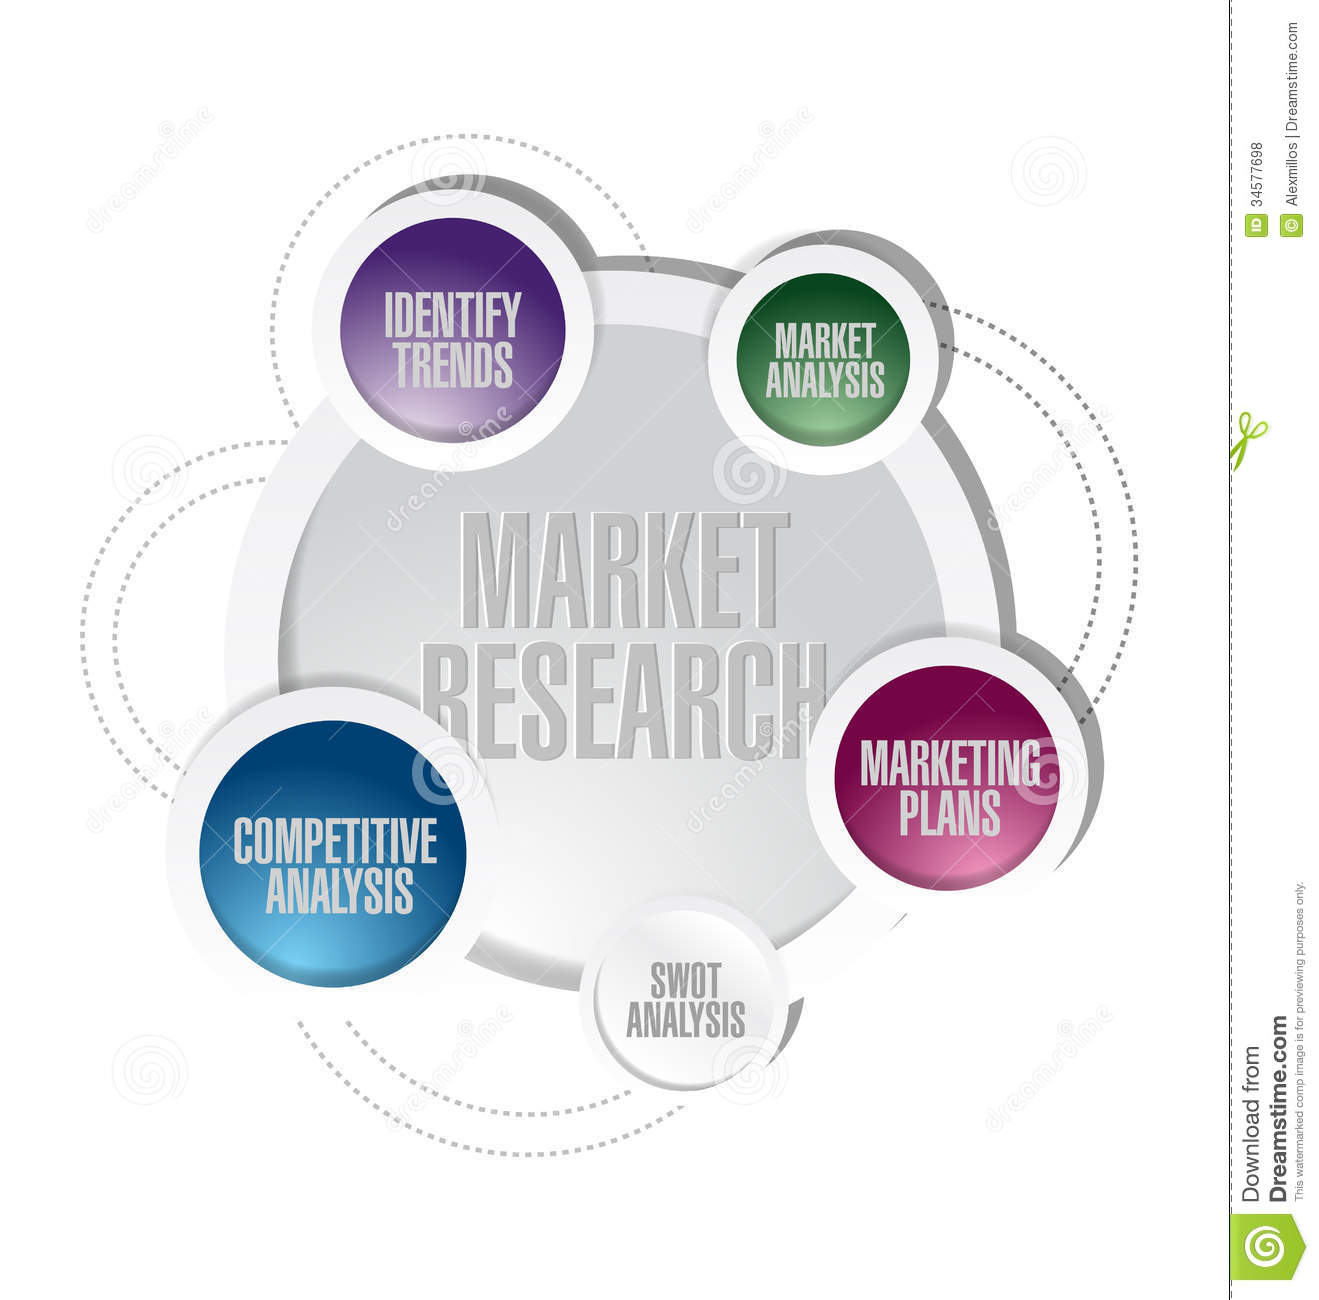 Market Research Cycle Diagram Concept Illustration Royalty Free Market Research Cycle Diagram Concept Illustration Design  Royalty Free Stock Photos Market Research Cycle Diagram Concept Illustration Design Image